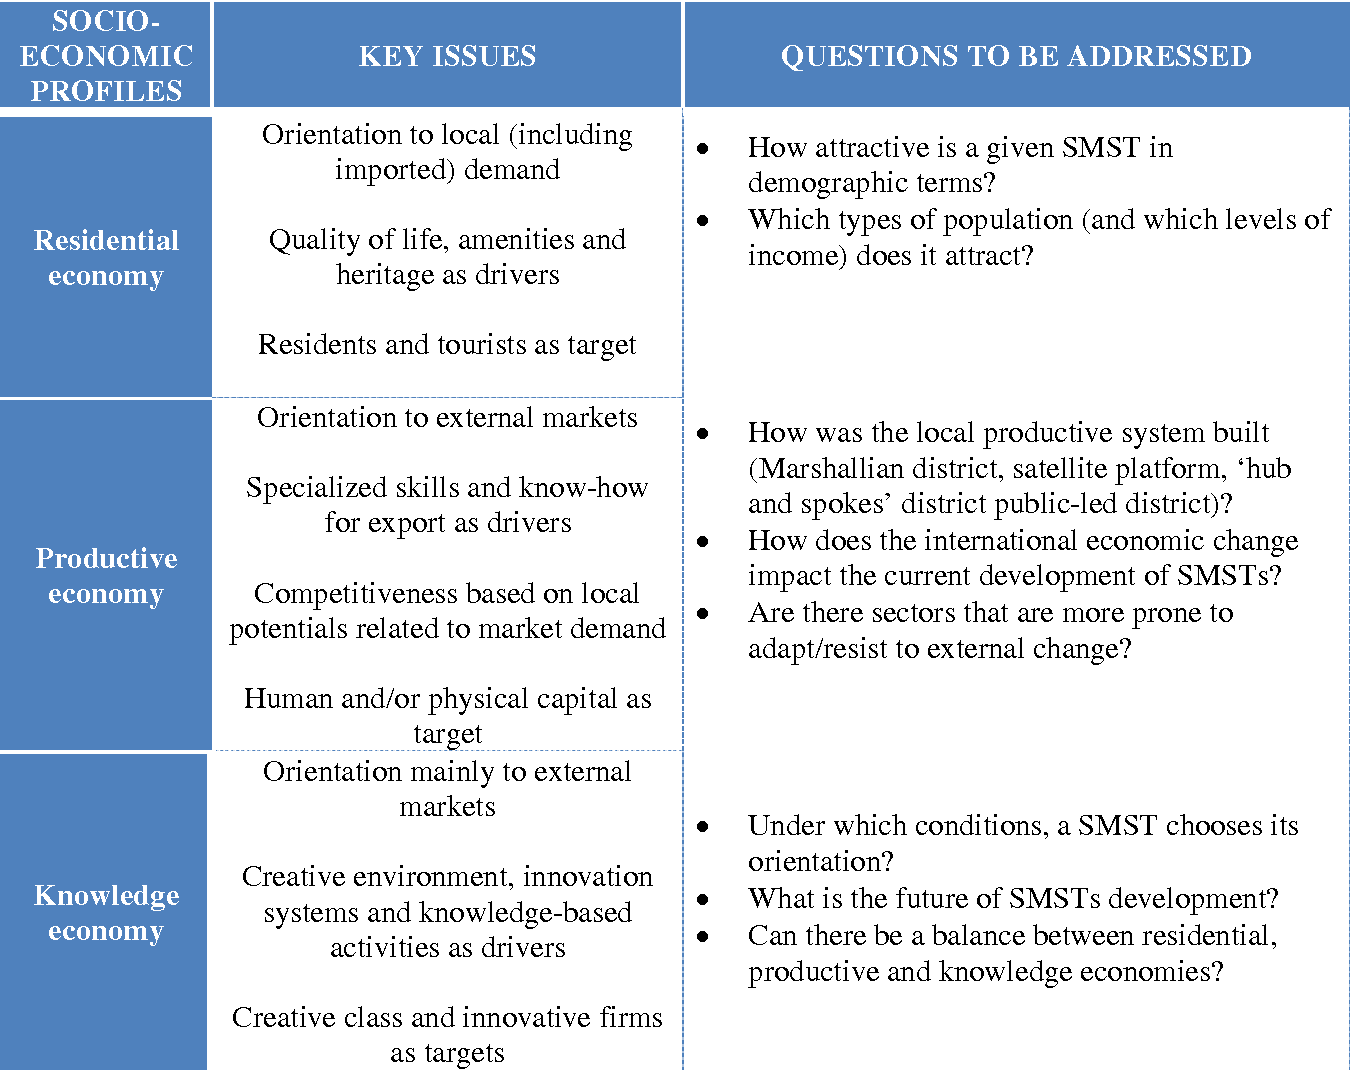 Table 3 from The Socio-Economic Development of Small and